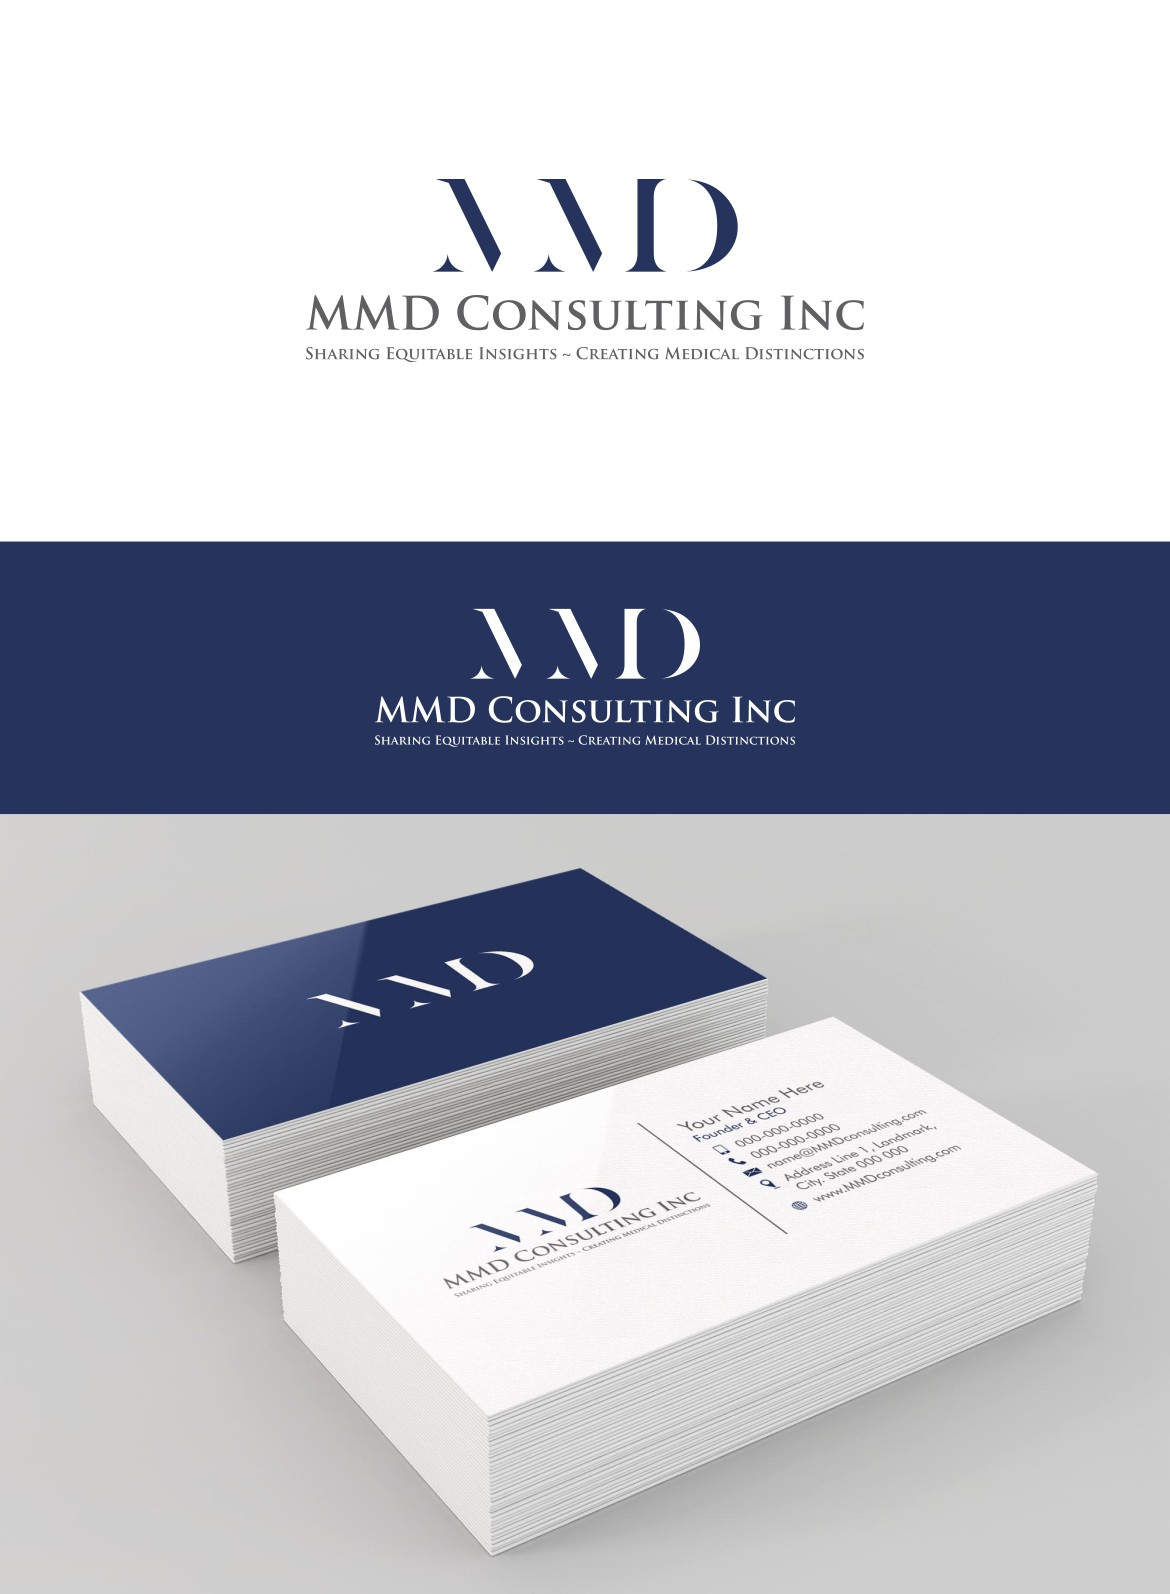 Create the next logo and business card for MMD Consulting Inc